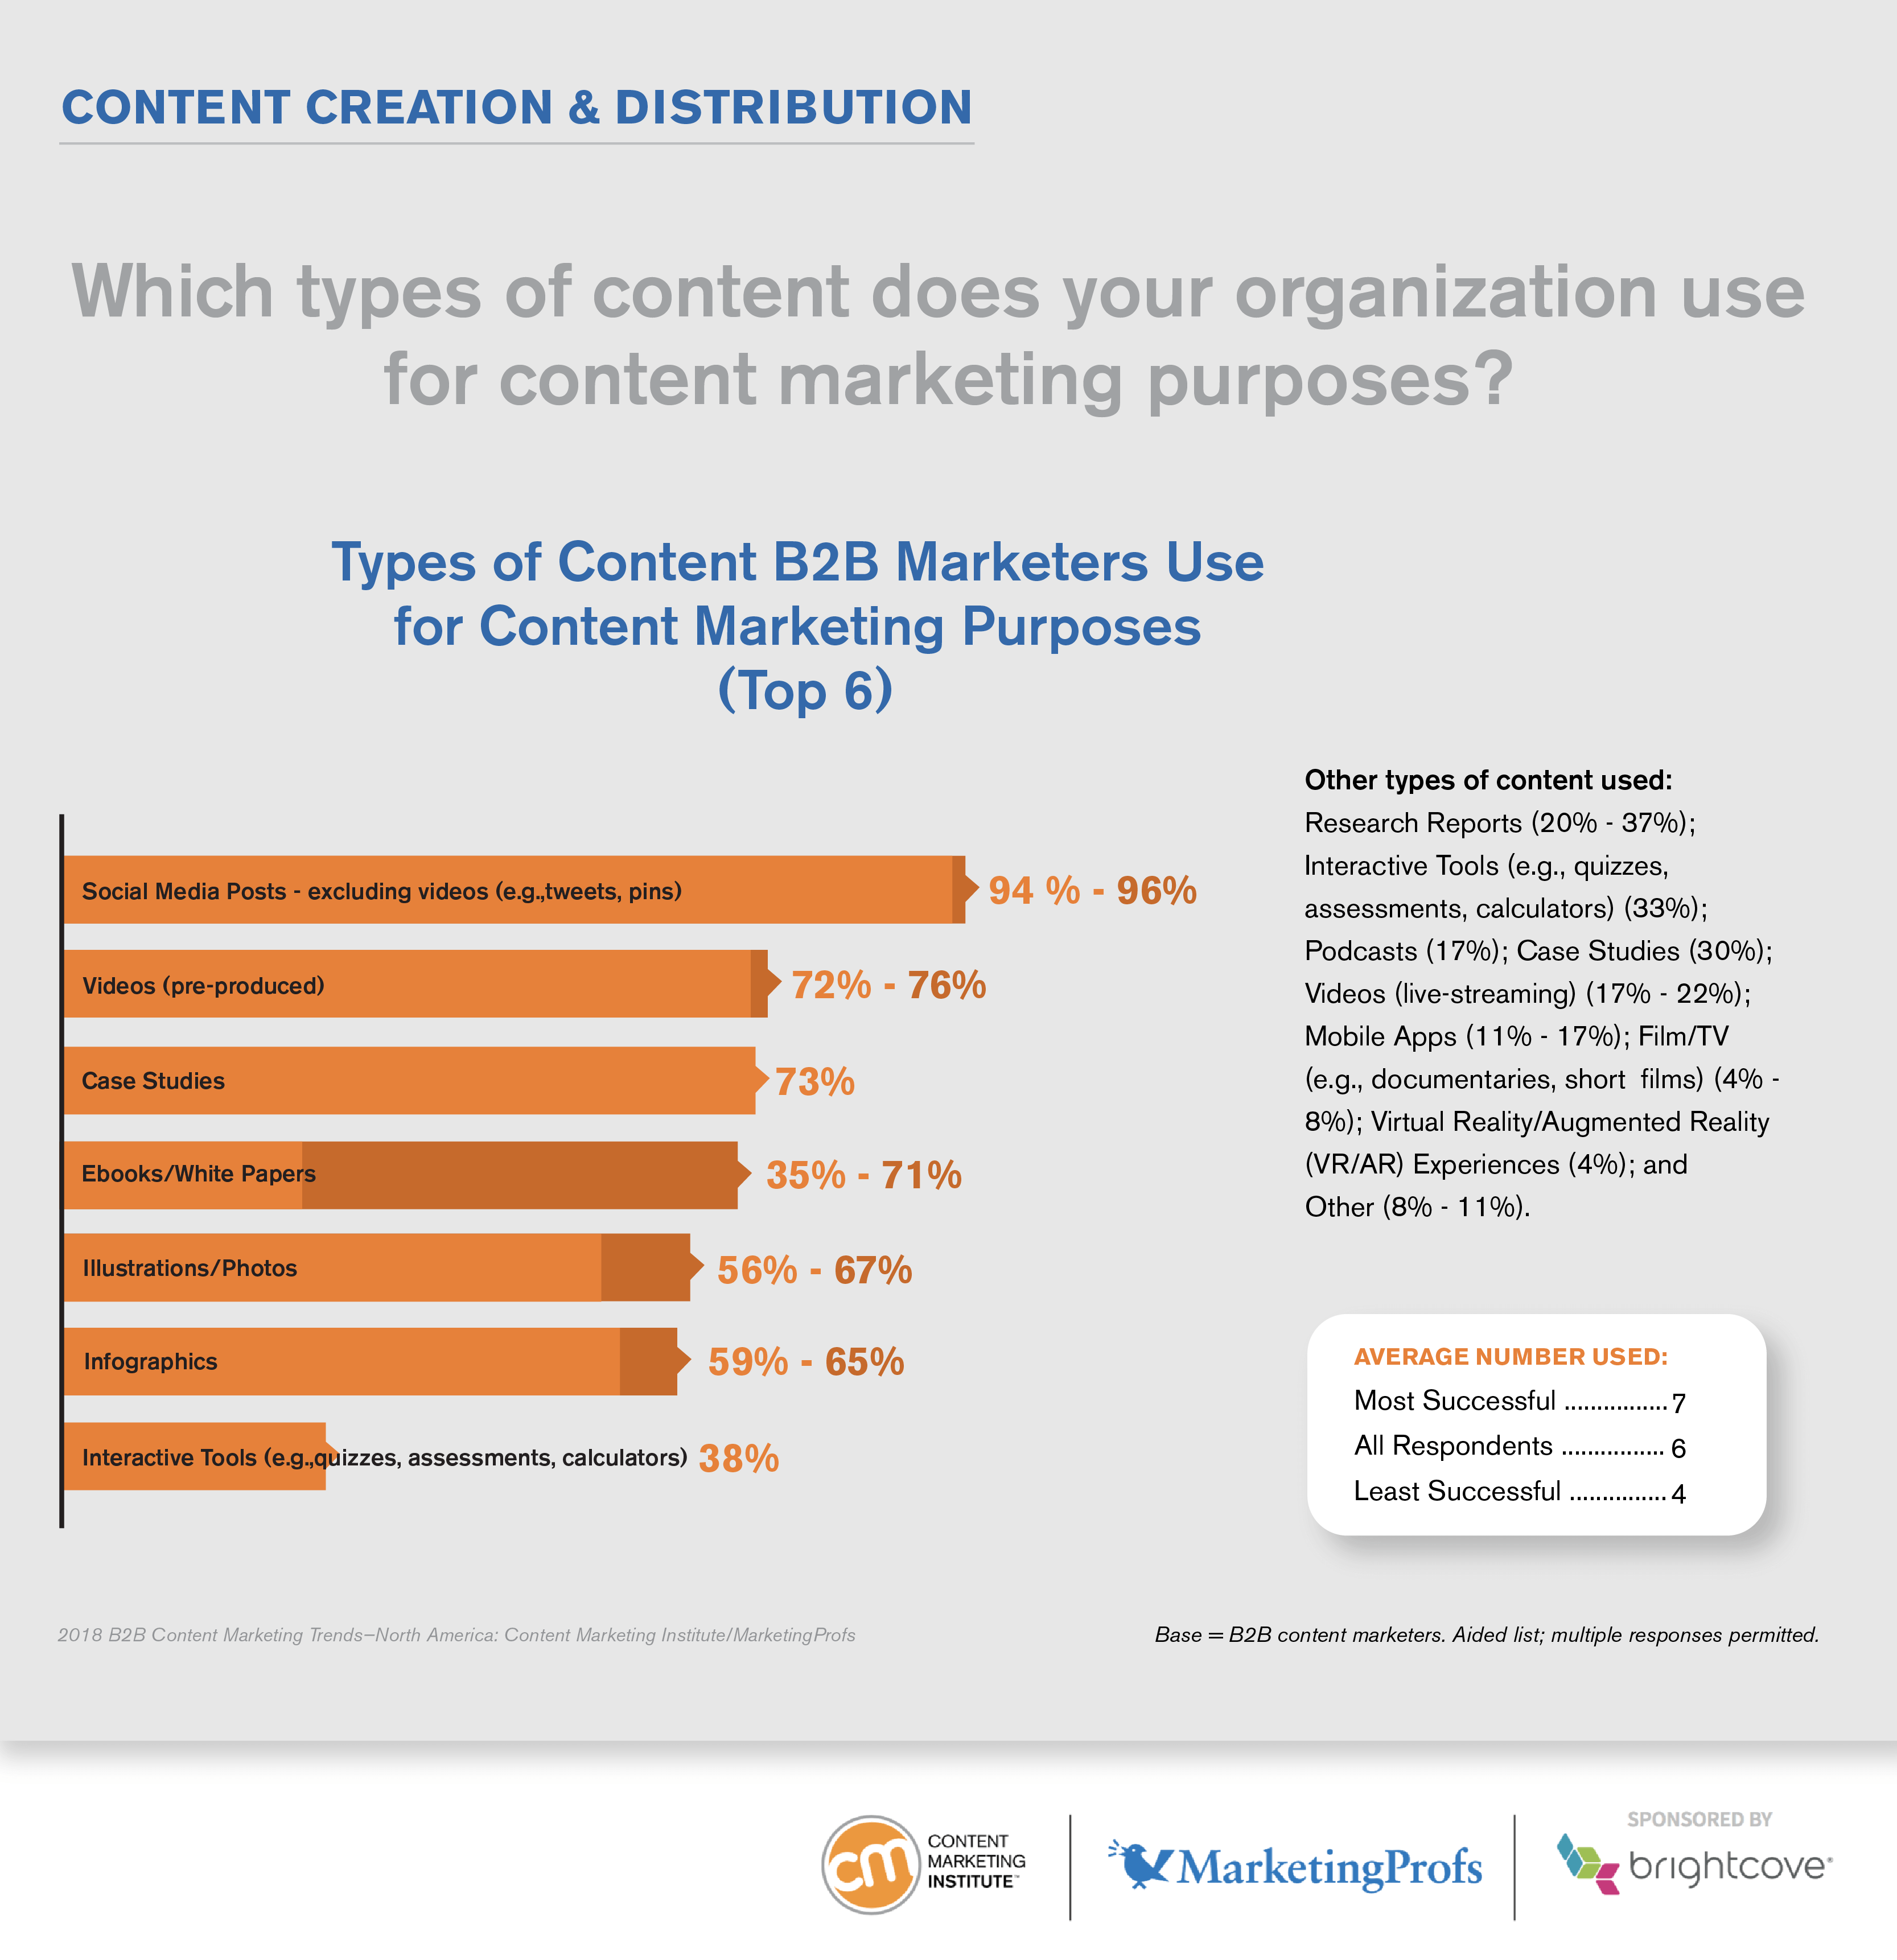 Top 6 types of content B2B marketers use for content marketing purposes